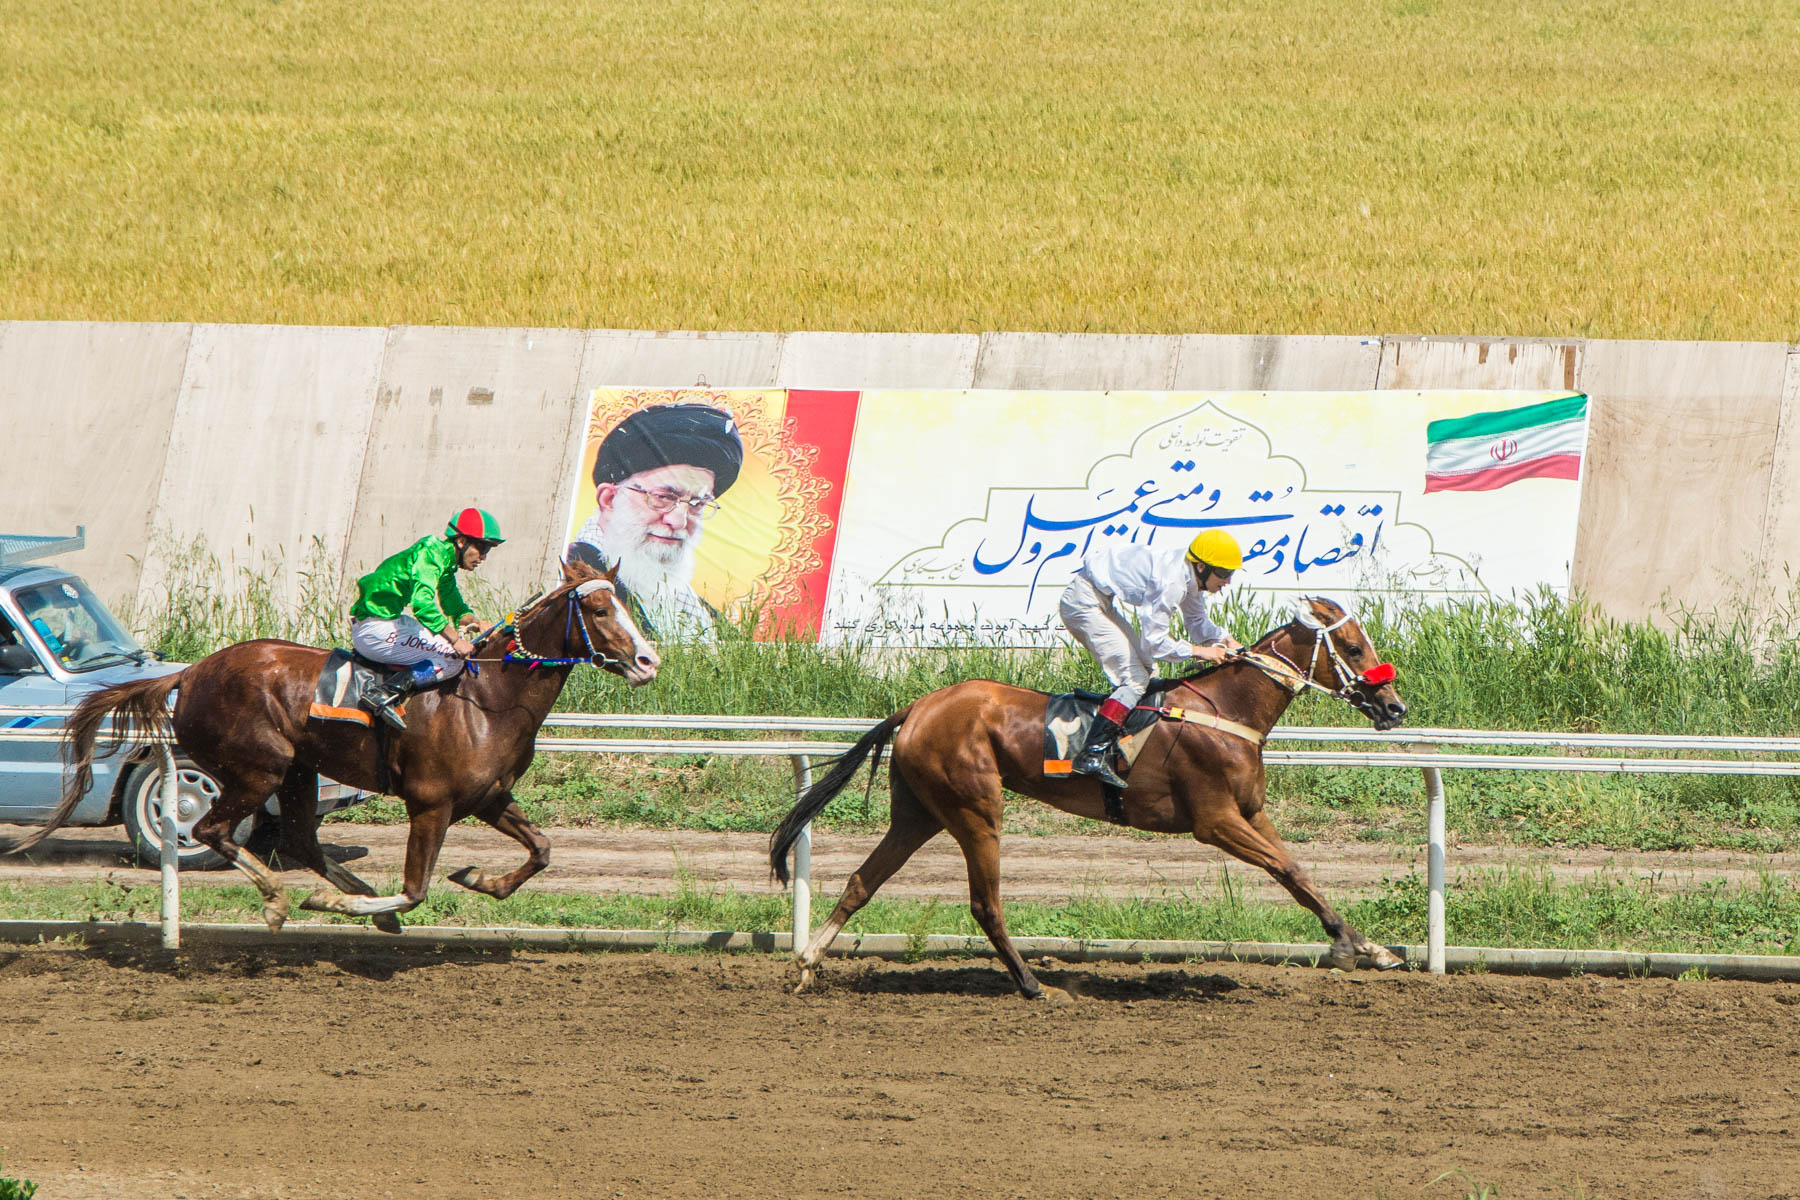 Off the beaten track highlights of Iran: The horse races in Gonbad-e Kavus, Iran - Lost With Purpose